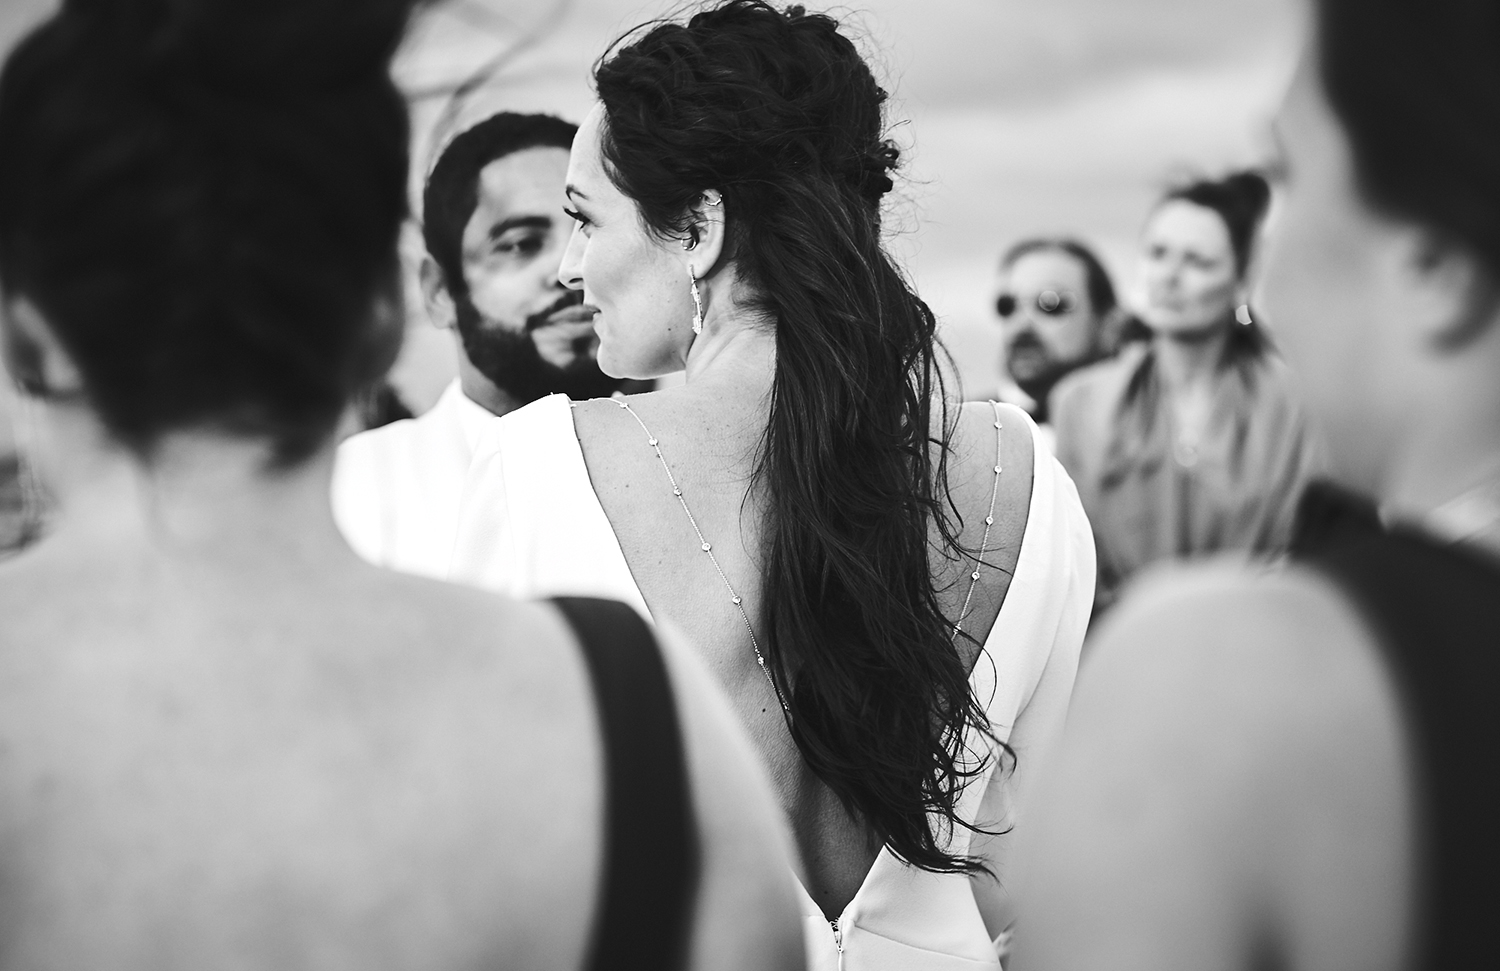 170930_WilliamValeWeddingPhotography_BrooklynWeddingPhotographer_By_BriJohnsonWeddings_0116.jpg